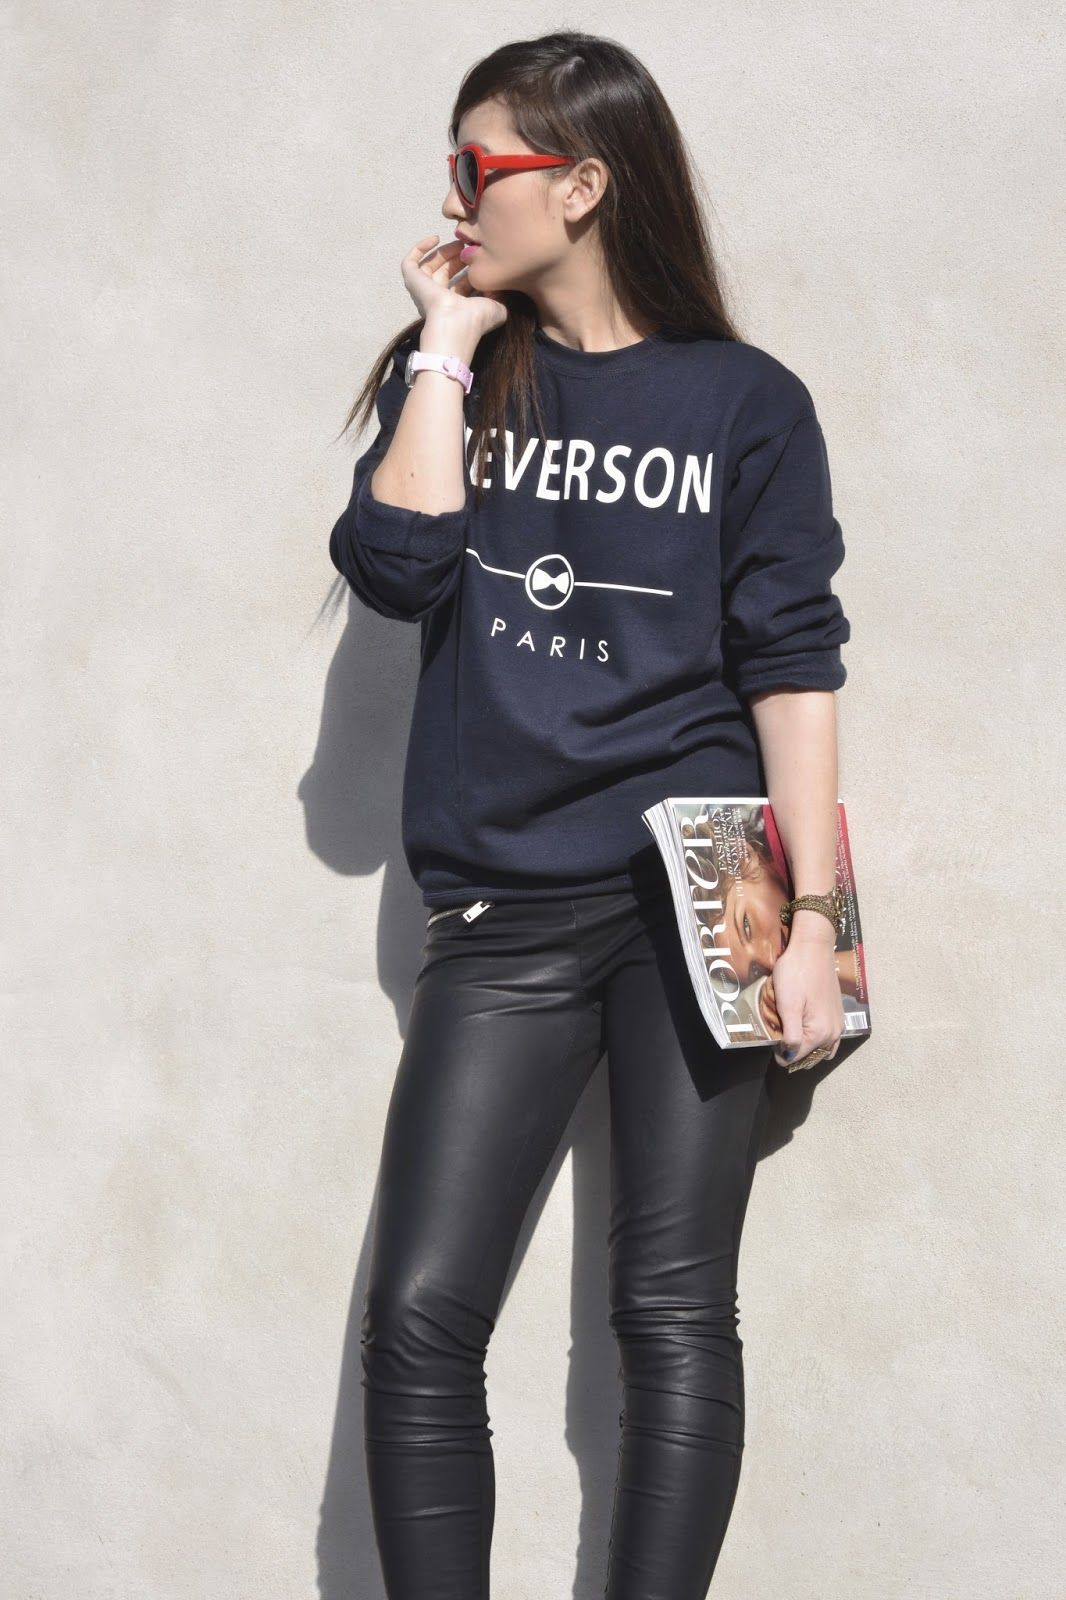 Neverson Sweater